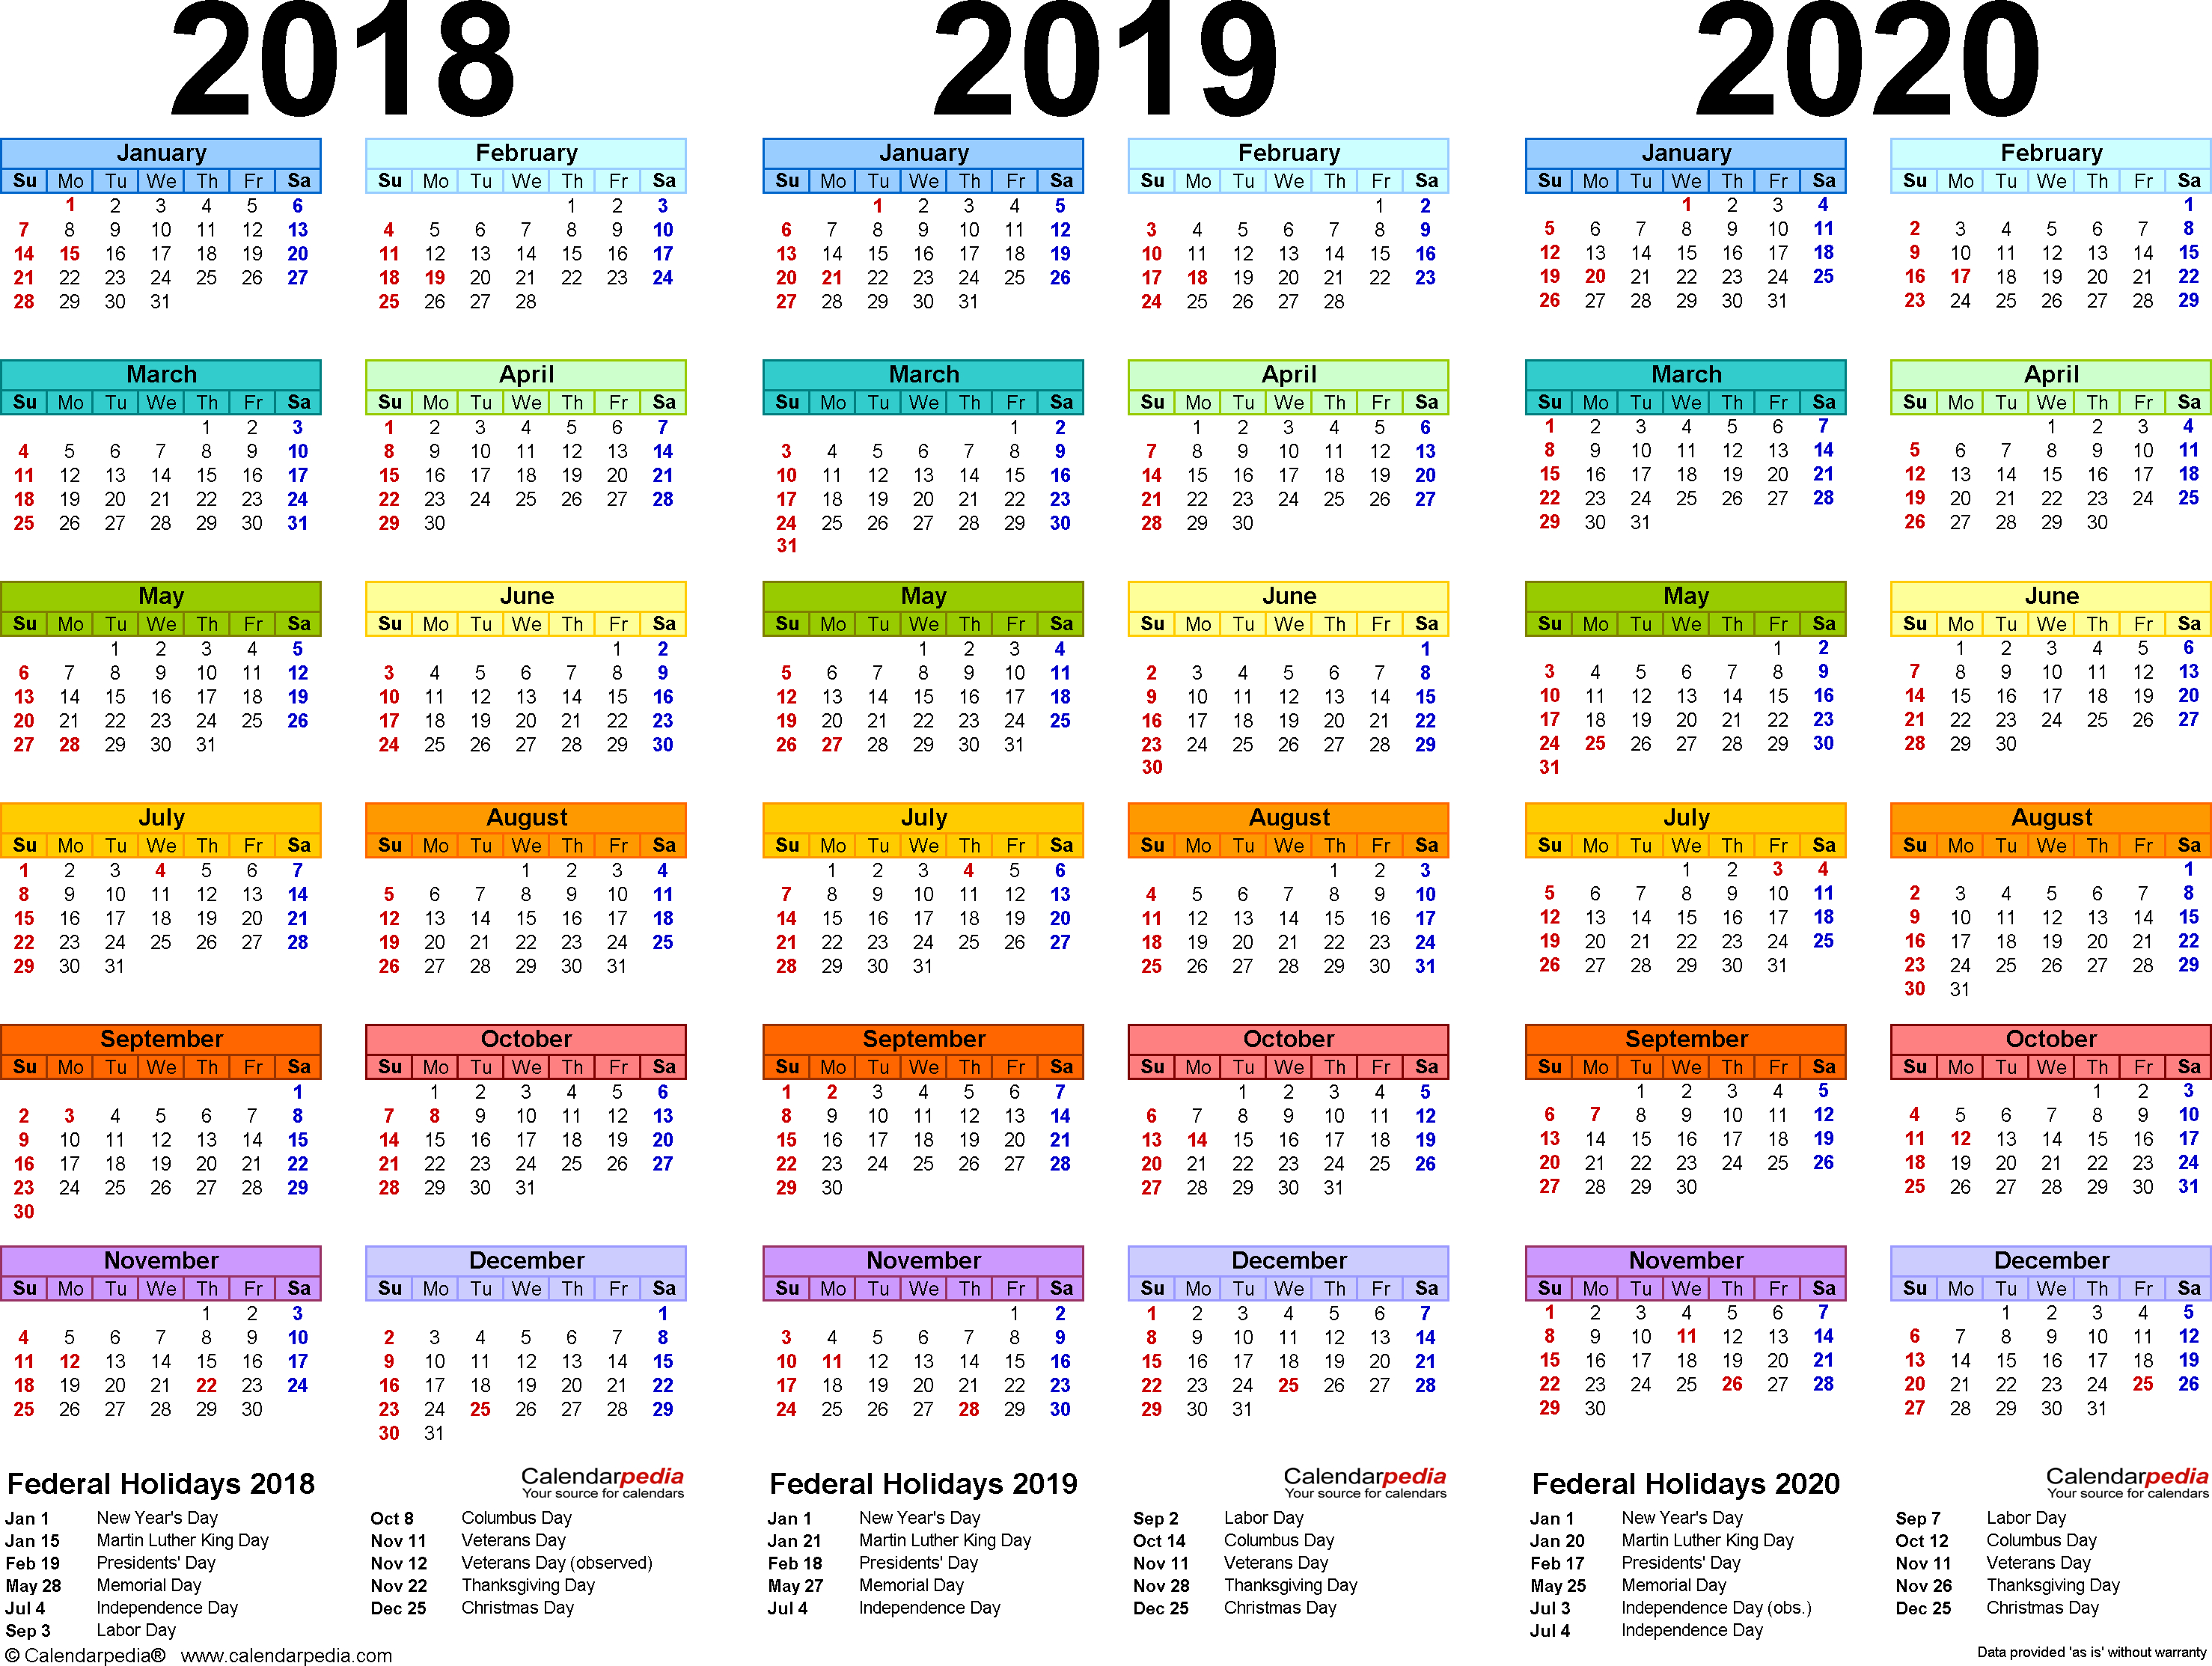 2019 Yearly Calendar - Free Download | Printables | Printable with regard to Year Long Calendar For 2019-2020 Printable